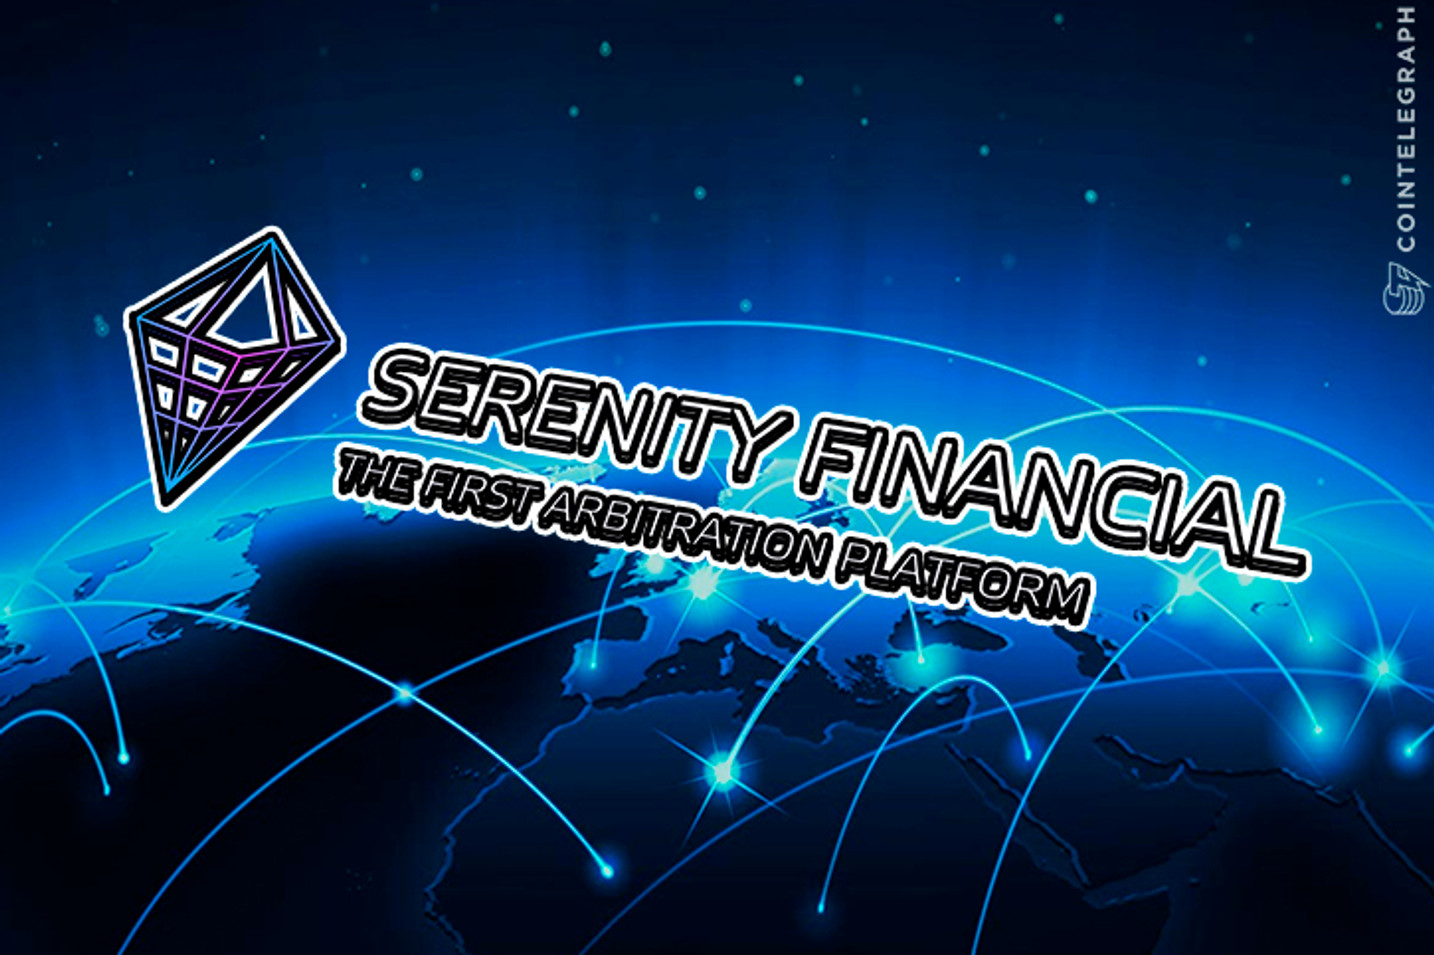 Serenity Financial: How to Improve the Life of Third World Investors